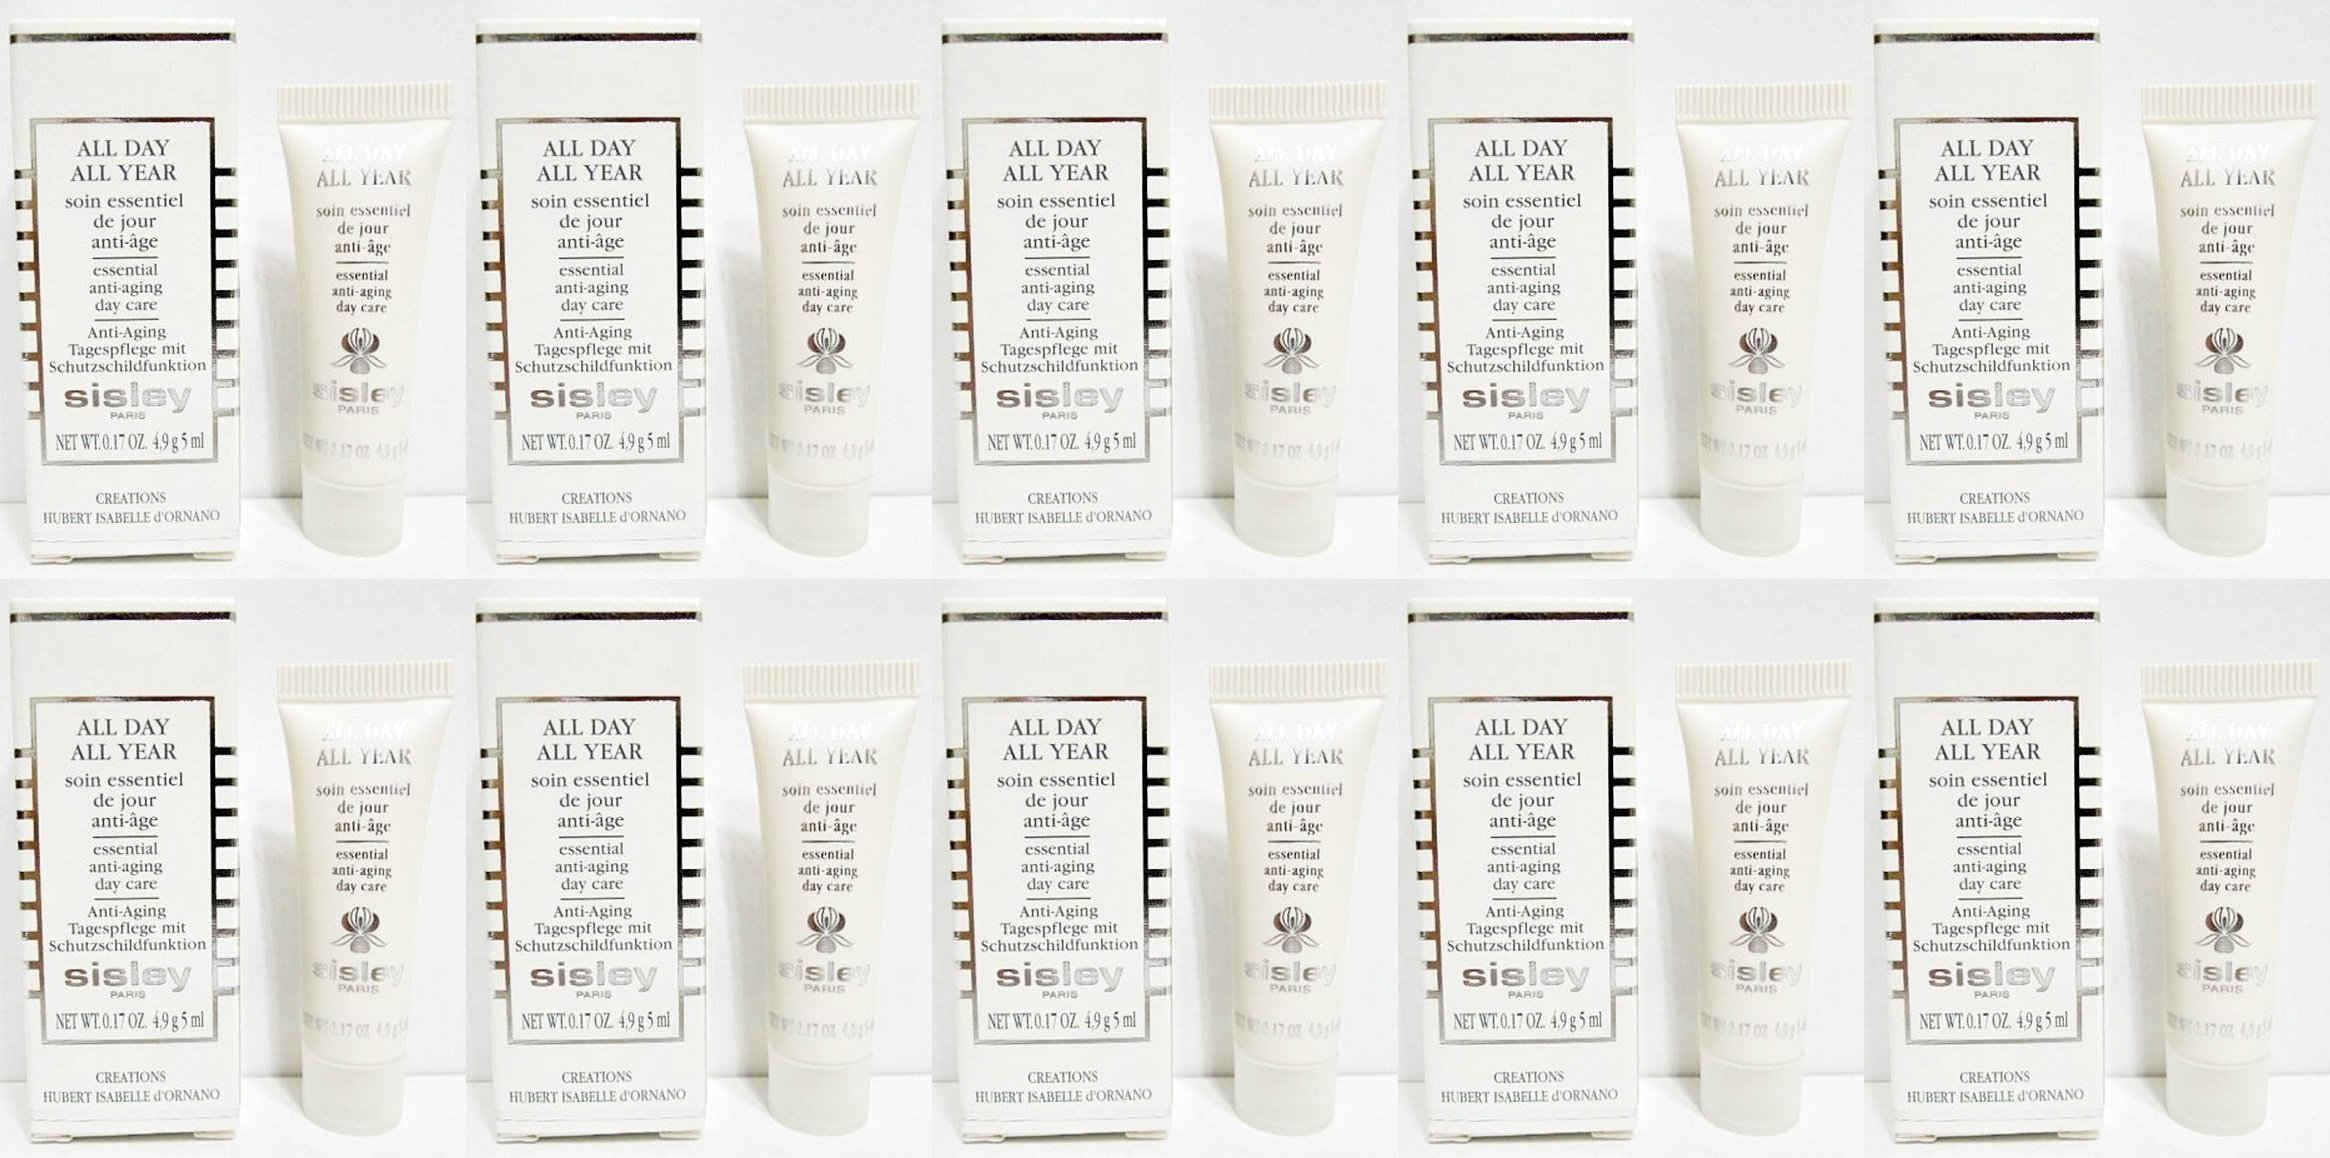 Sisley All Day All Year Essential Day Care 4ml x 10 tubes (40ml) Travel size